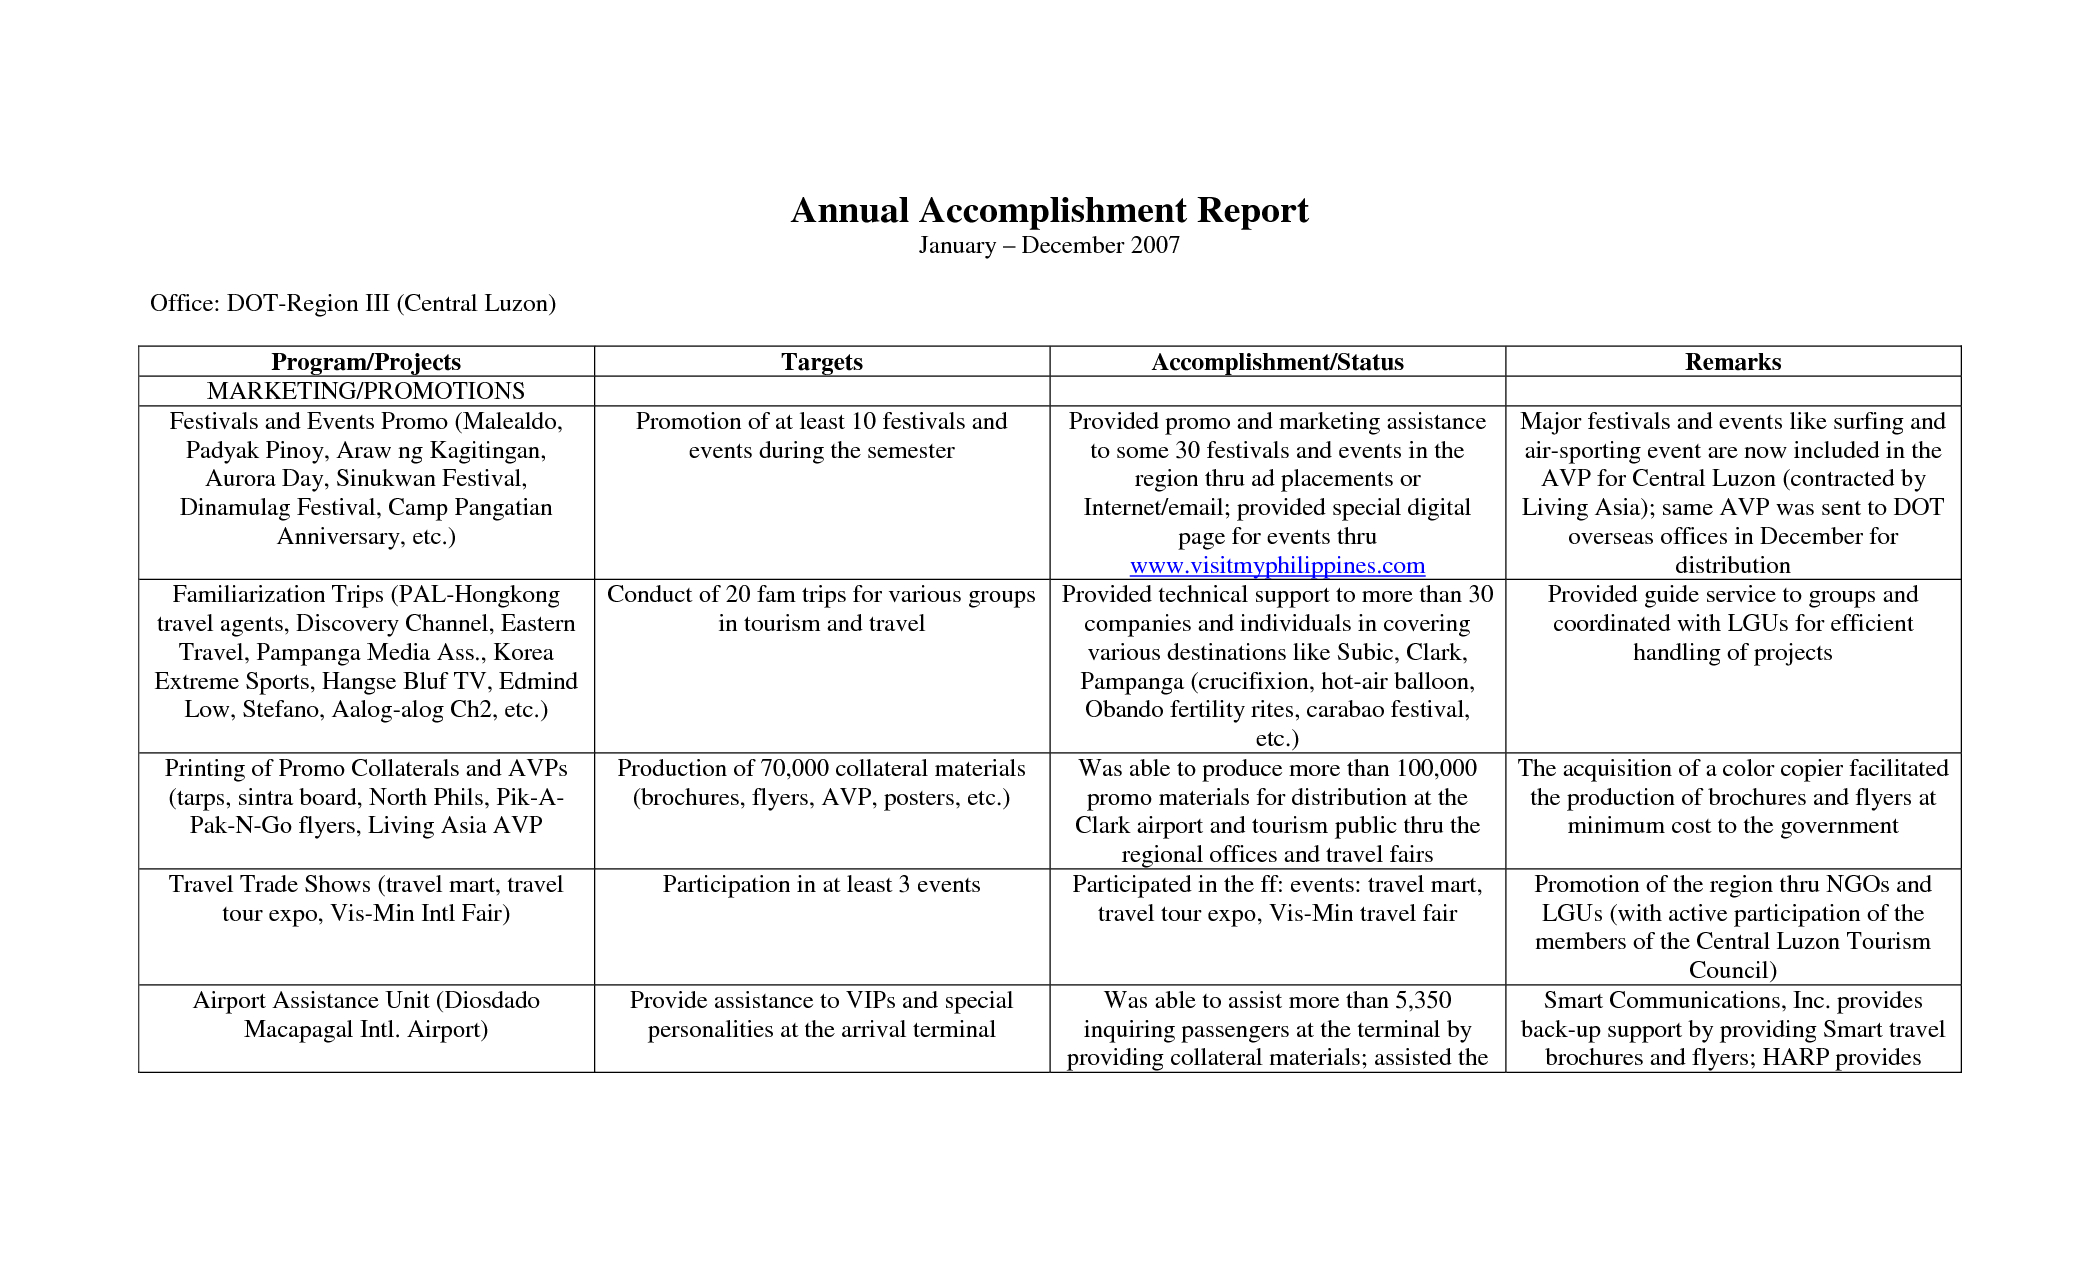 Annual Accomplishment Report Sample With Table Format : Venocor Pertaining To Weekly Accomplishment Report Template